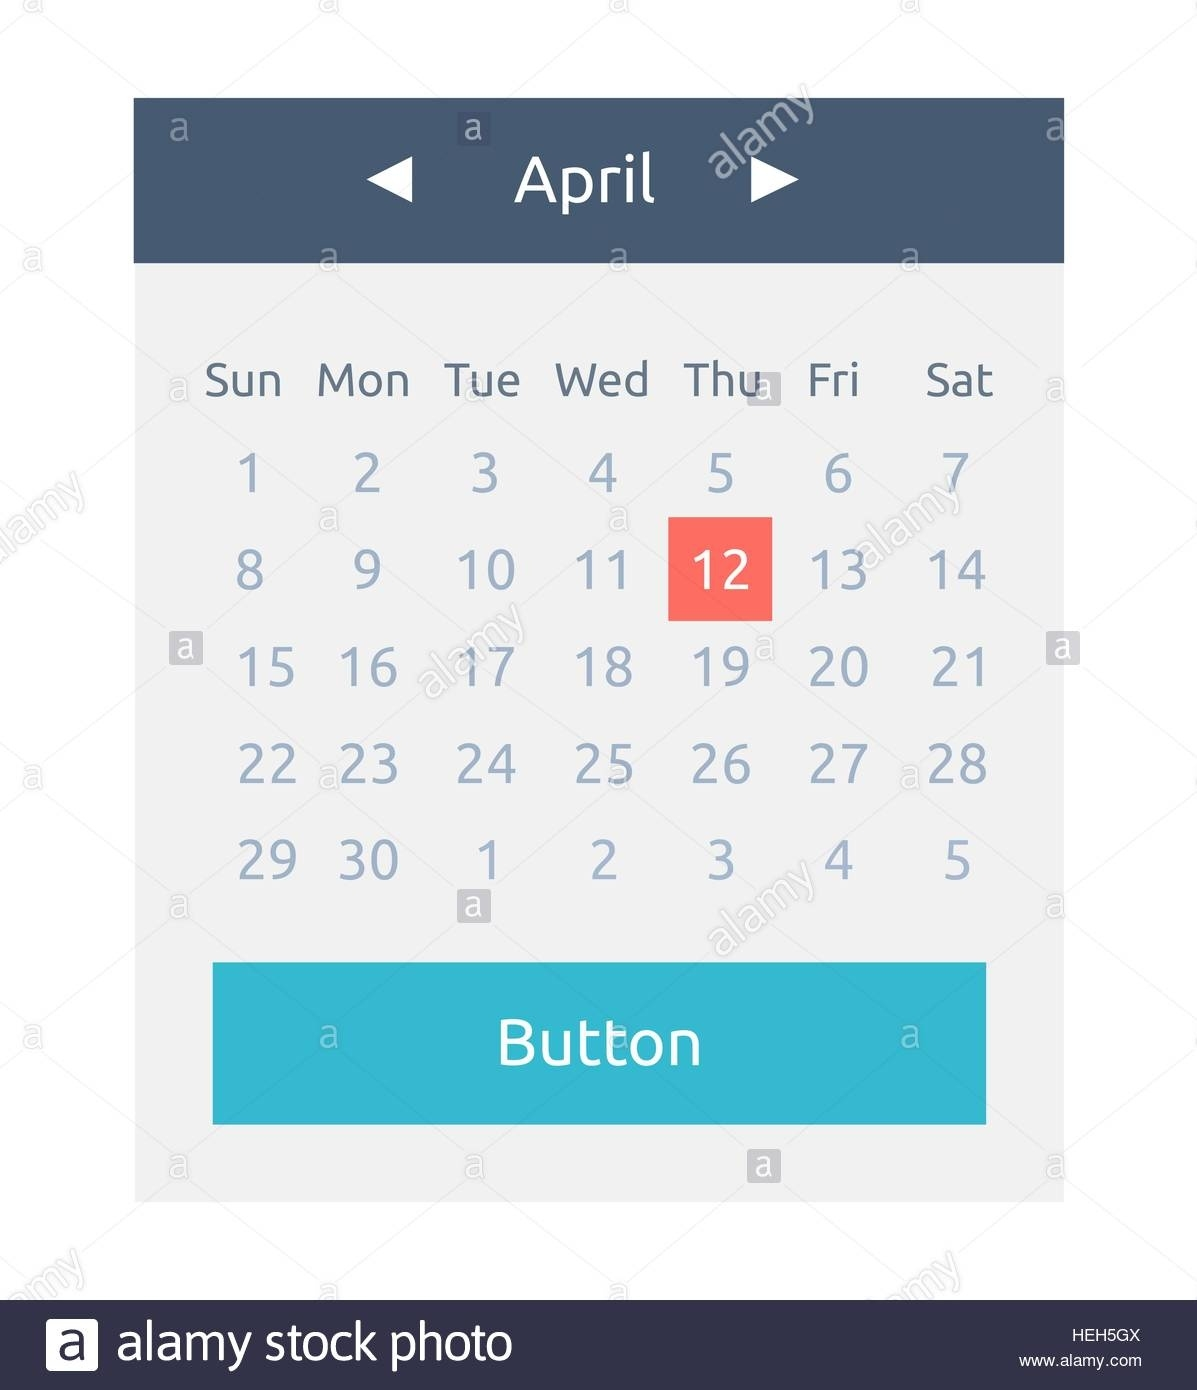 Website Element Calendar Button. Calendar Icon Page, Monthly Date_Calendar Icon For Website